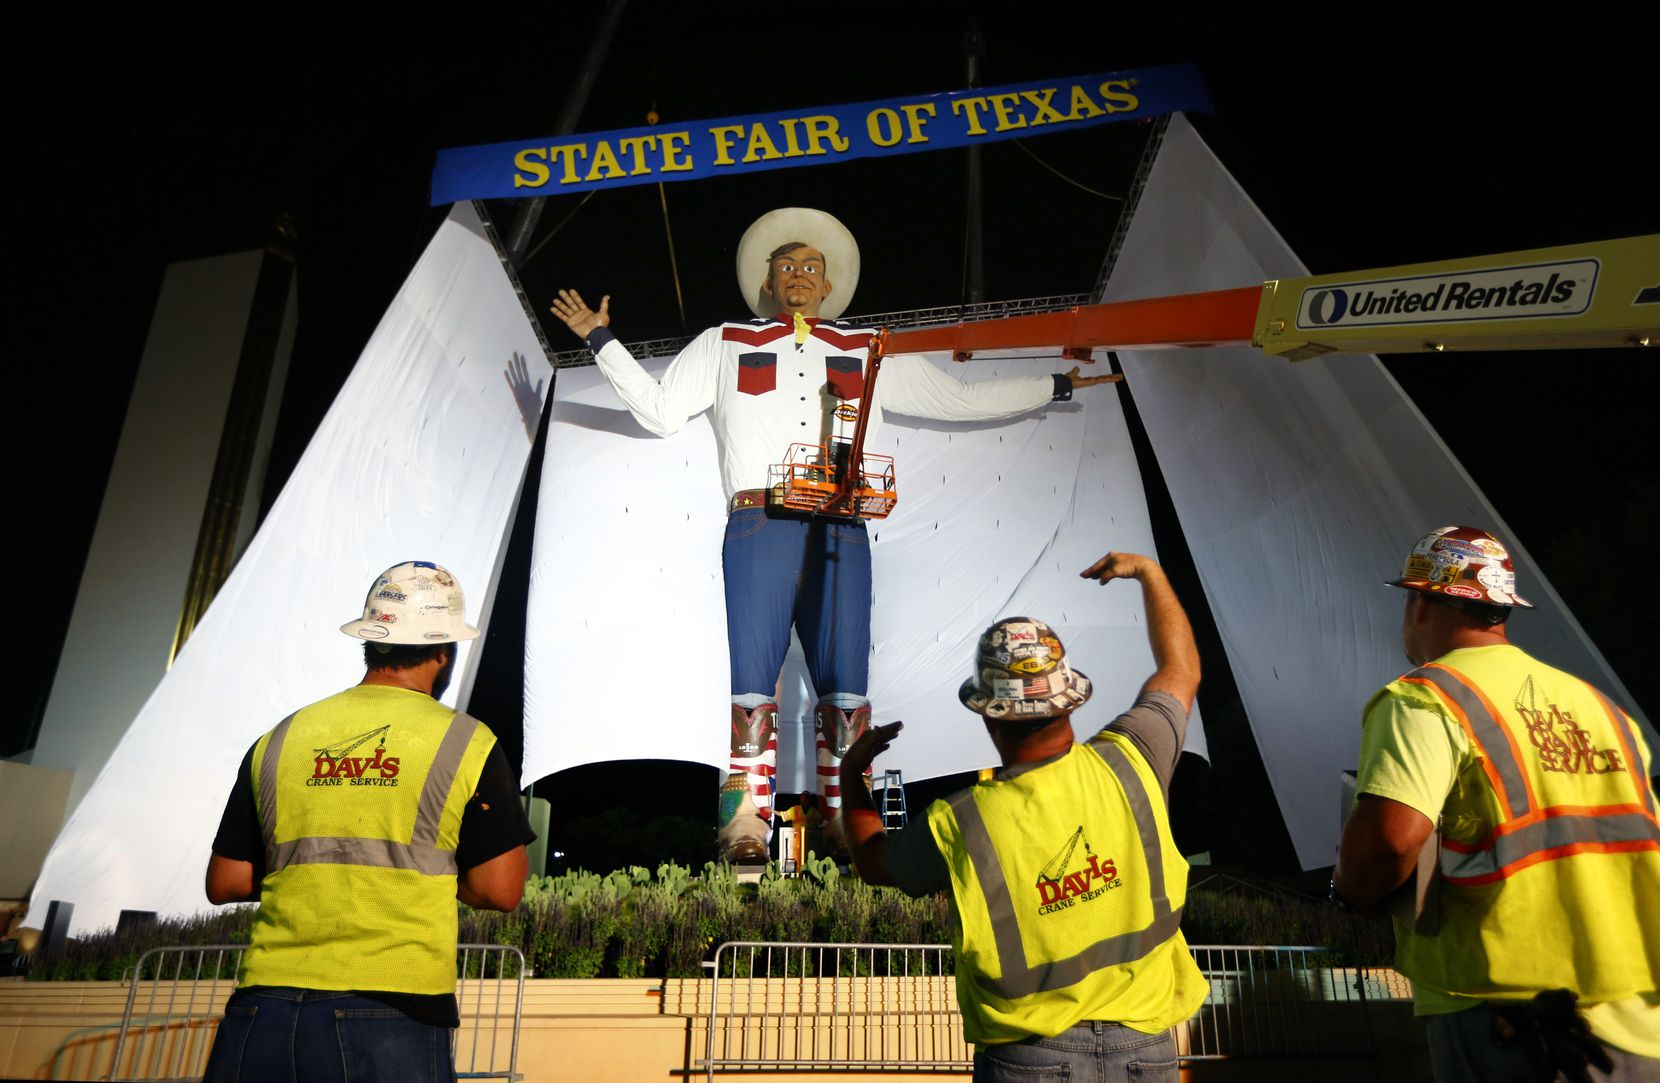 The new Big Tex, which was unveiled in 2013.